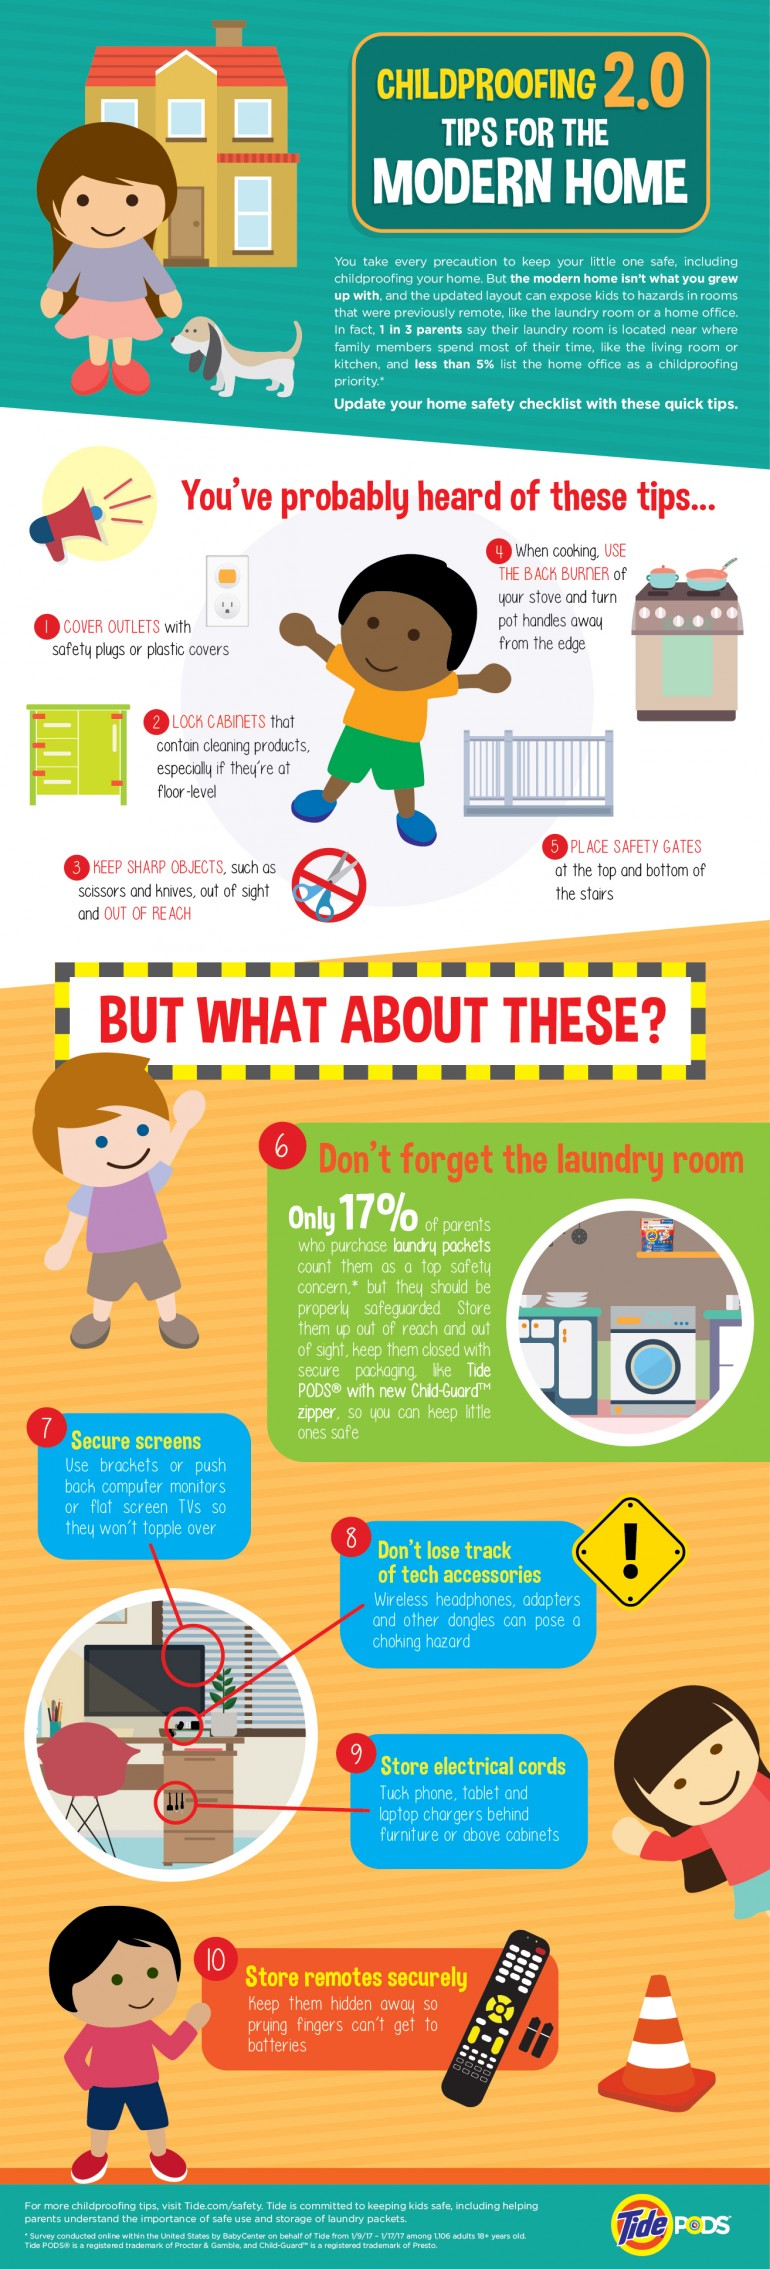 Parenting Advice 10 Home Safety Tips Facts Myths To Reduce Common Accidents With Children